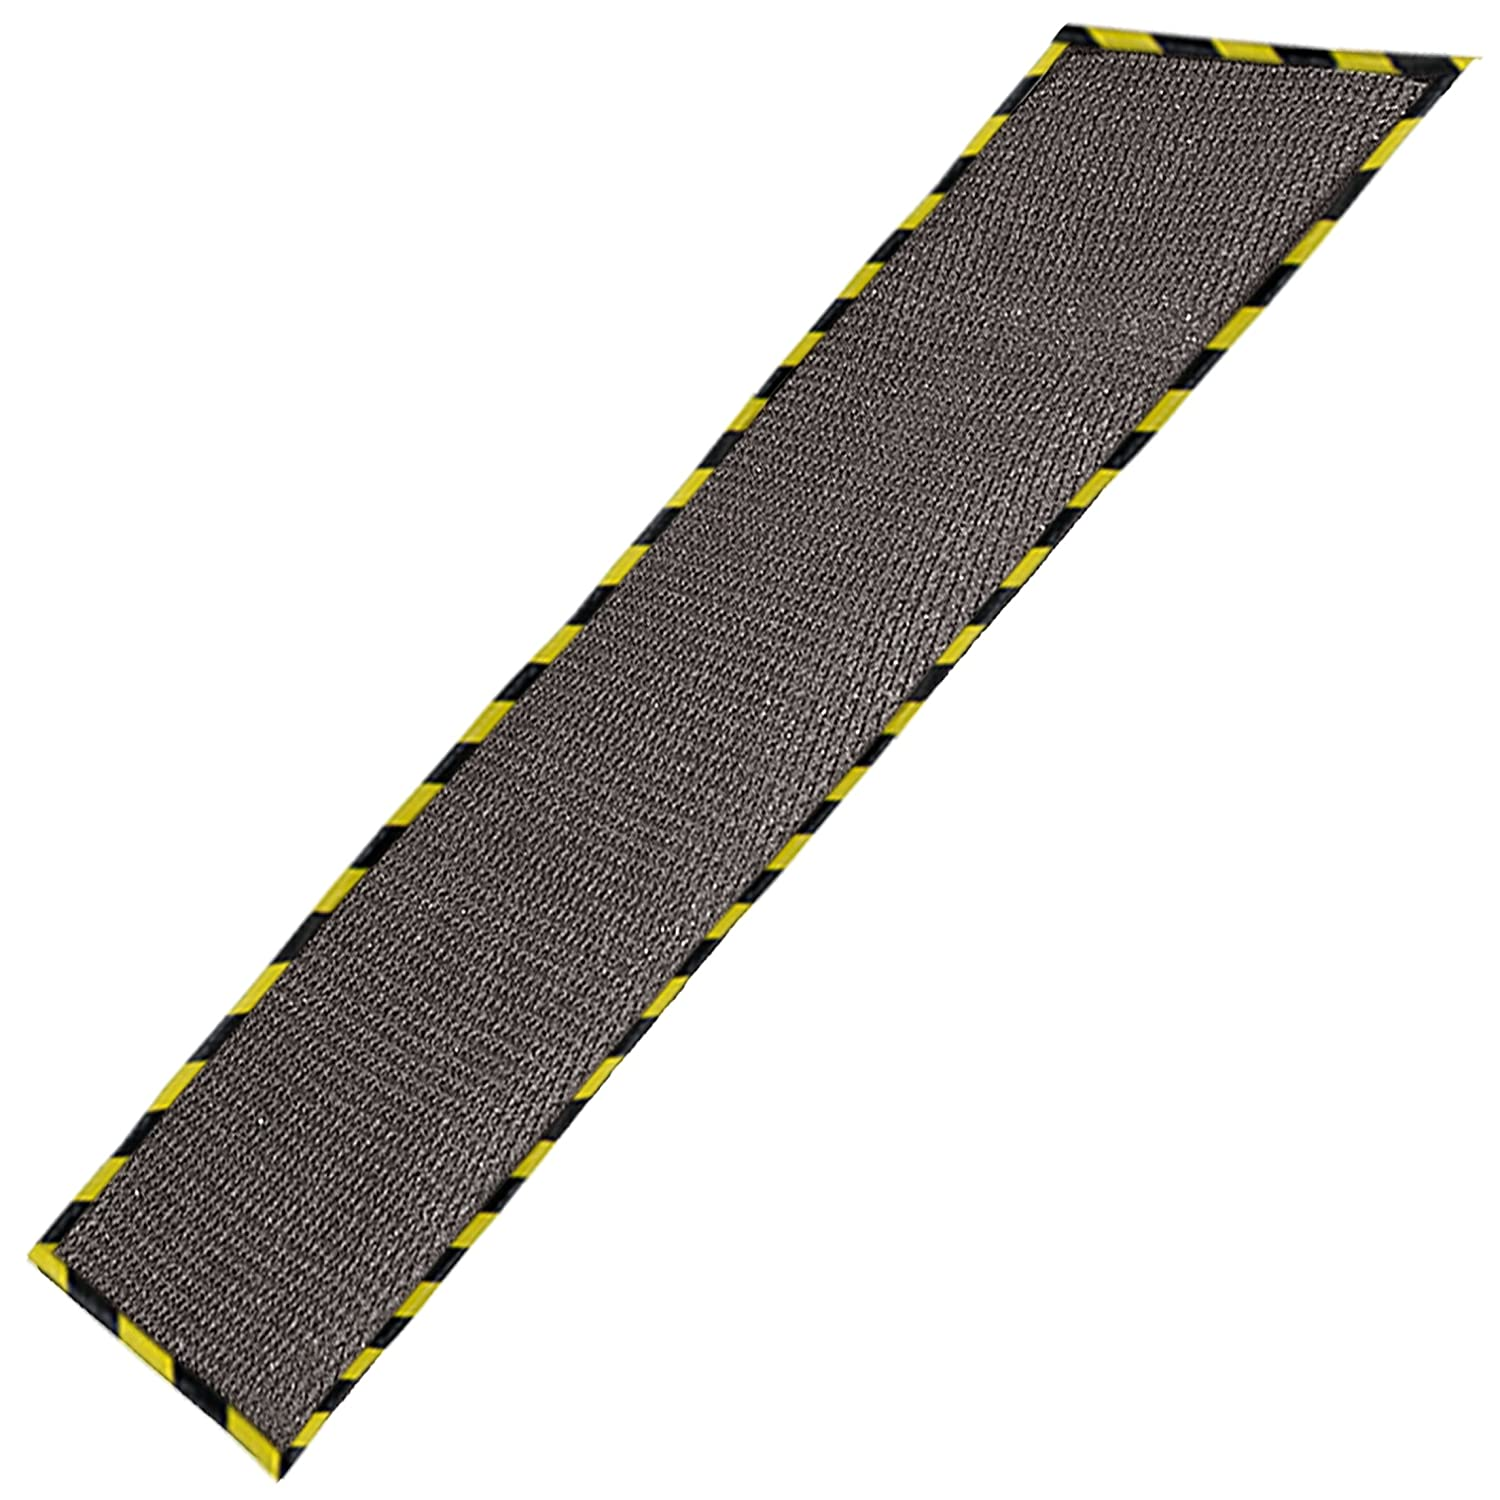 'Just Suk It Up', Poly-Back Garage Mat with Border and Grid, Grey, 4-oz Needle-Punch Core, 64x102' 64x102 Just Suk It Up Limited